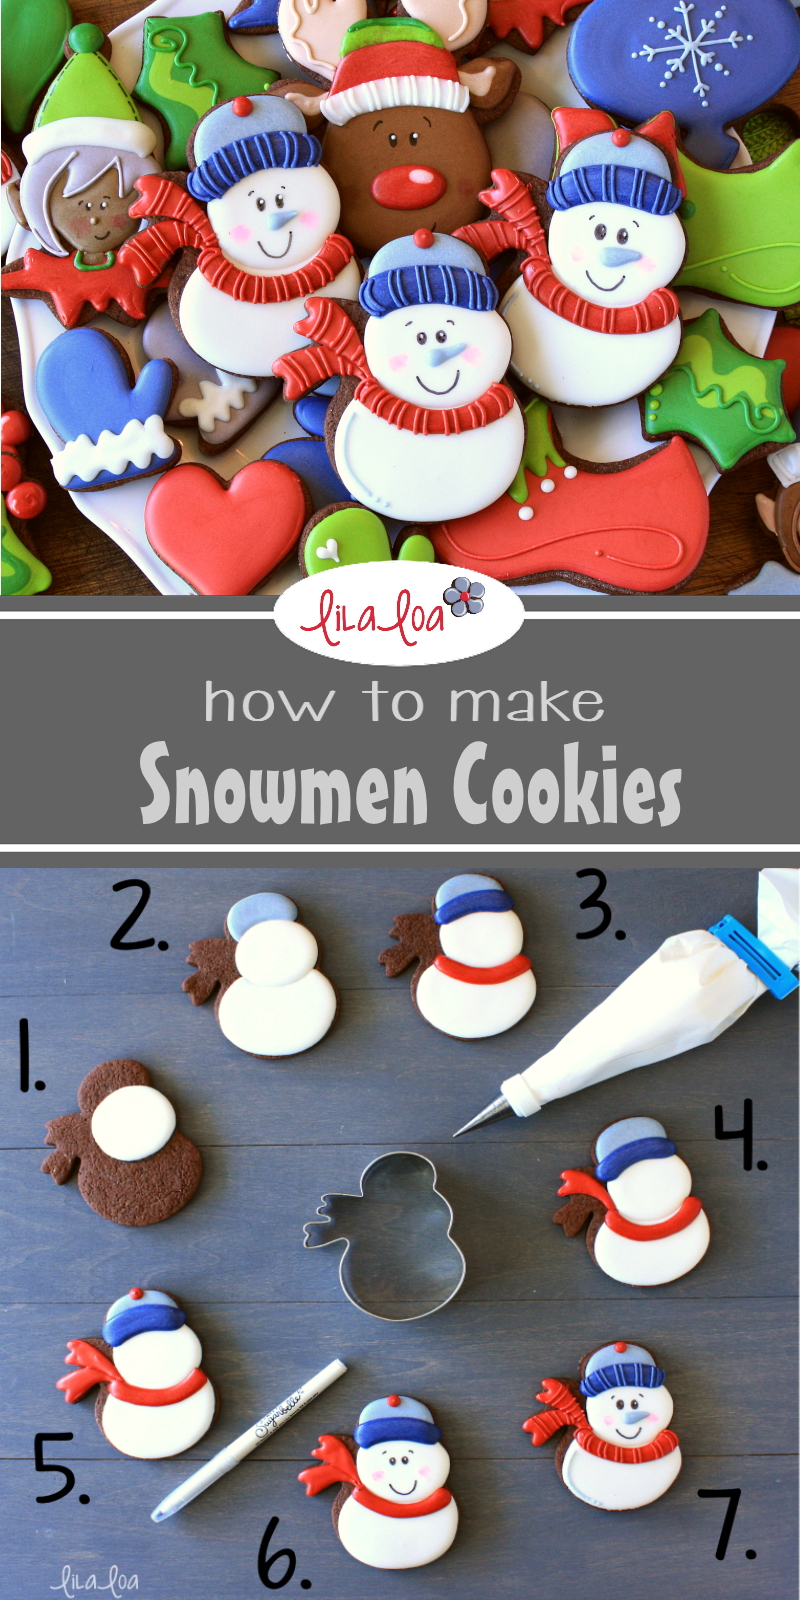 How to make decorated snowman sugar cookies a step by step tutorial